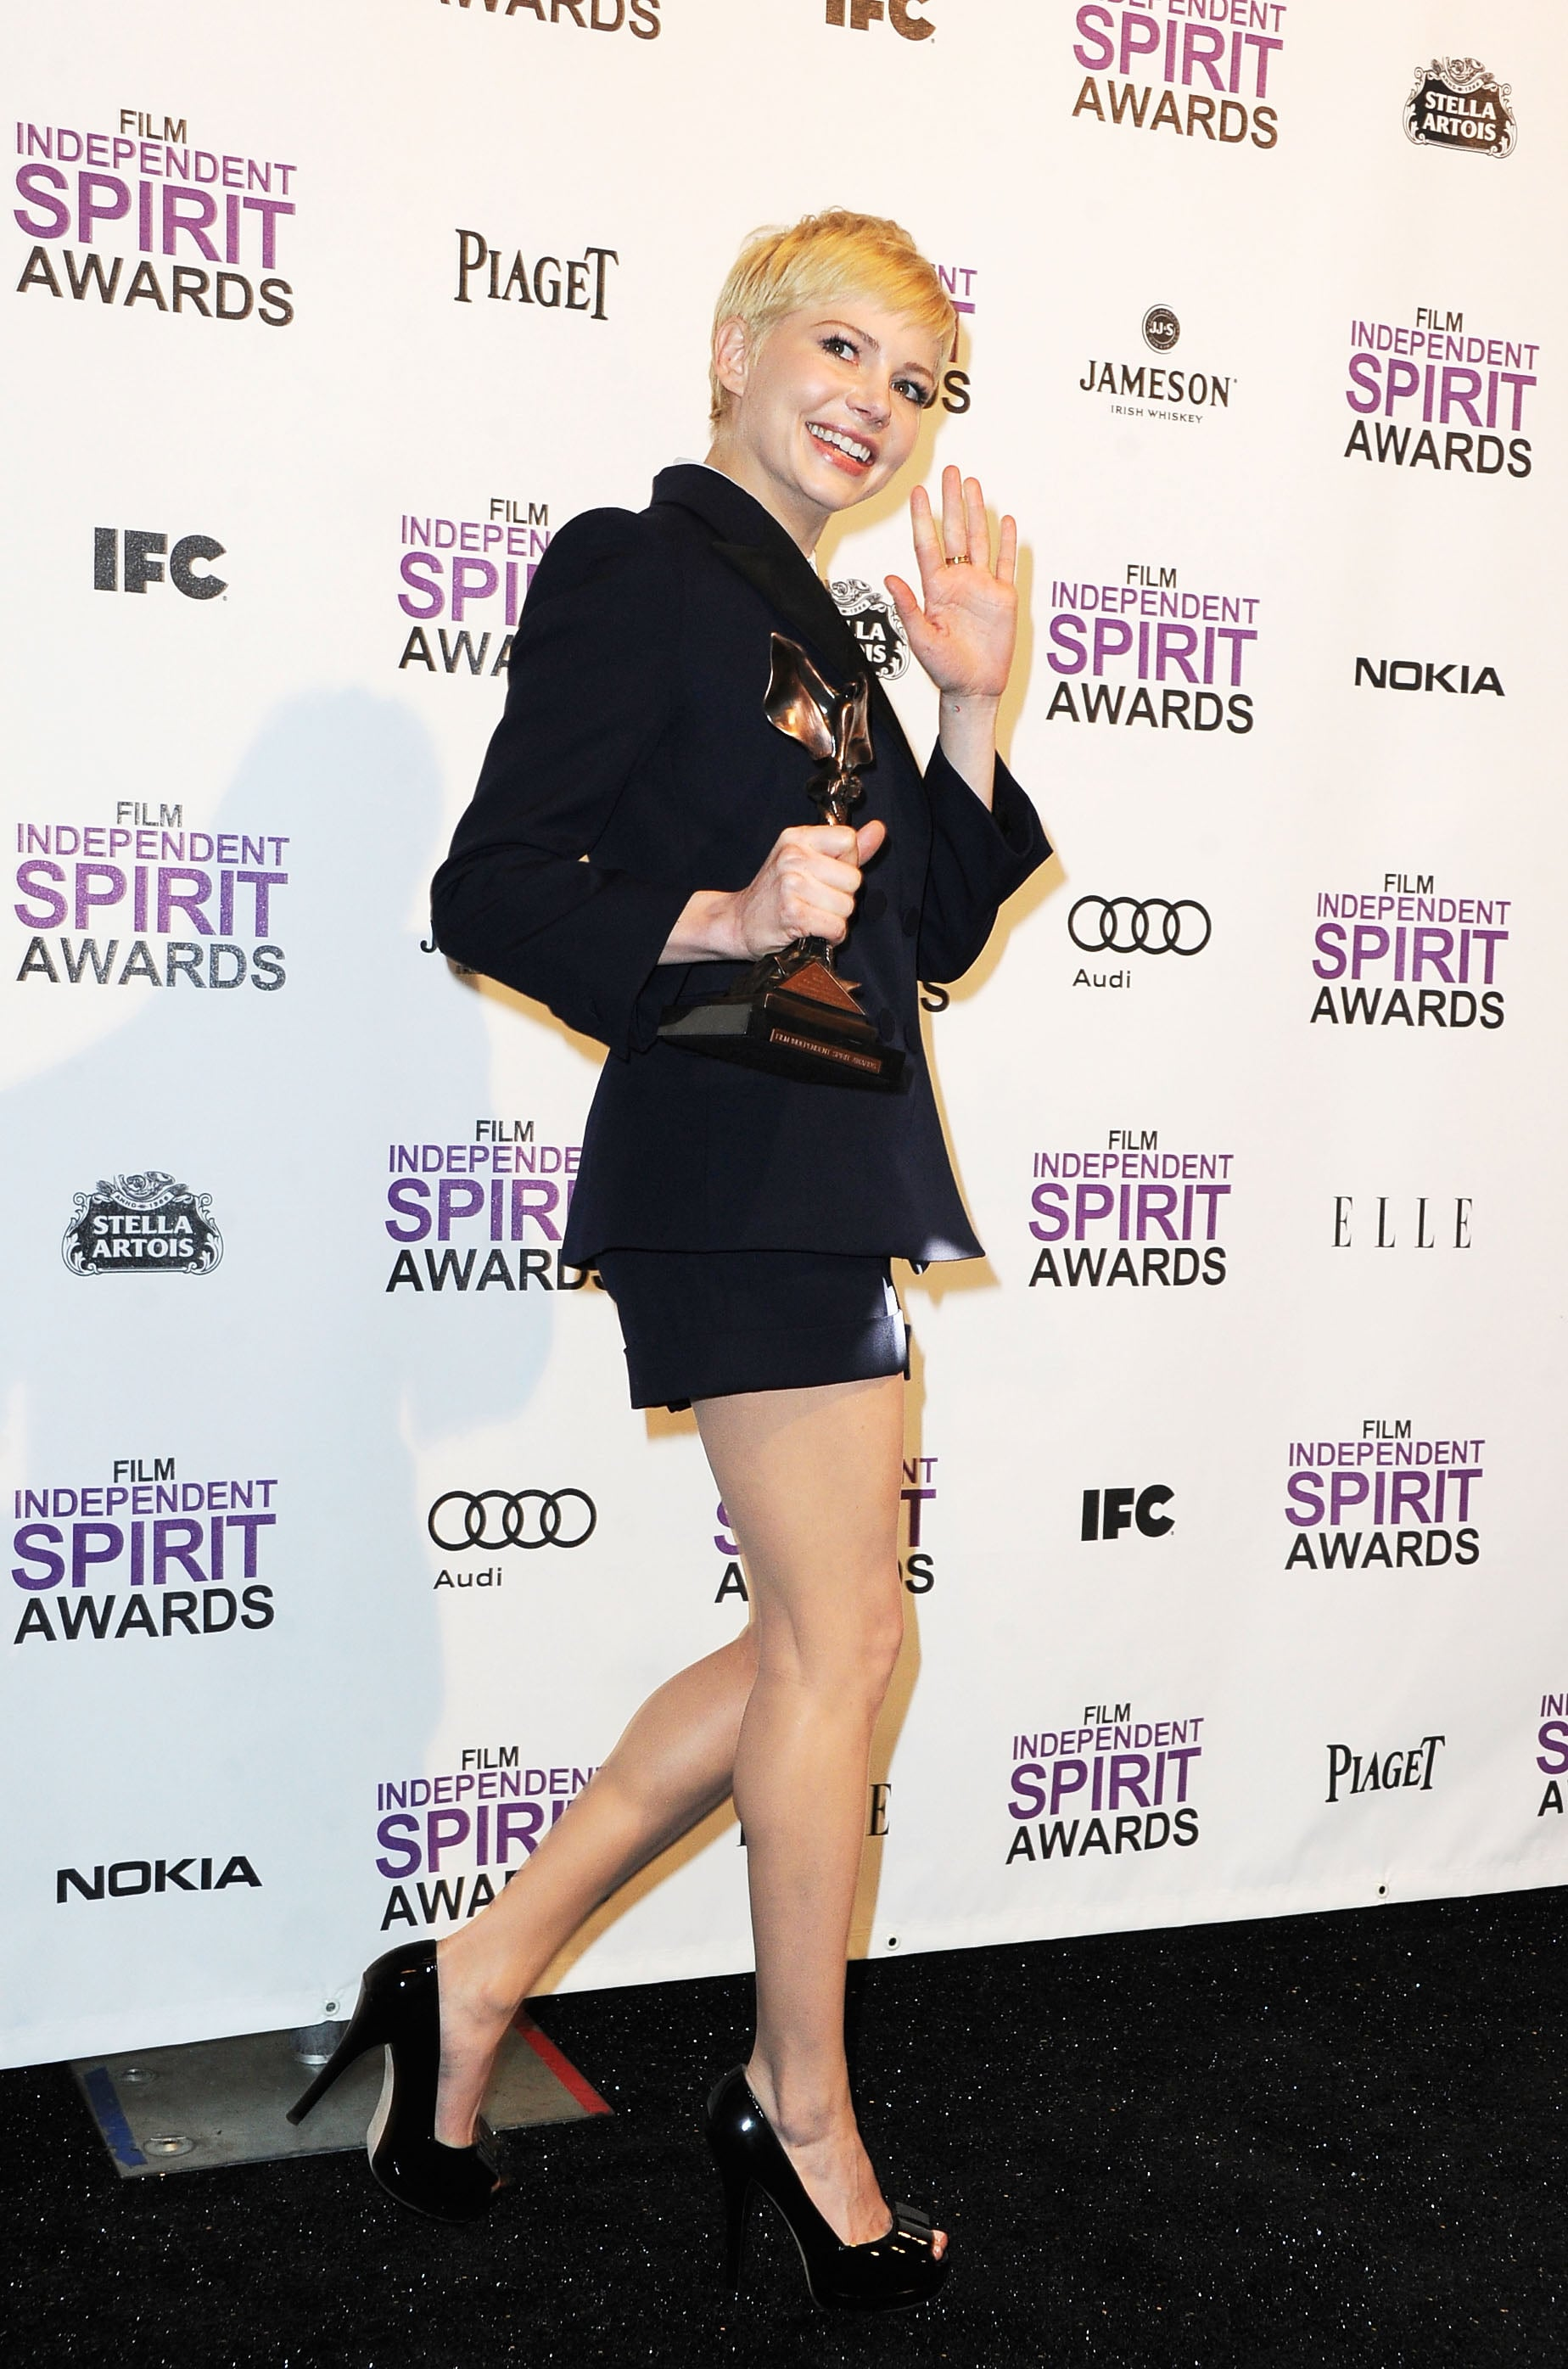 Michelle Williams gracefully accepted an award at the February 2012 Film Independent Spirit Awards in LA.